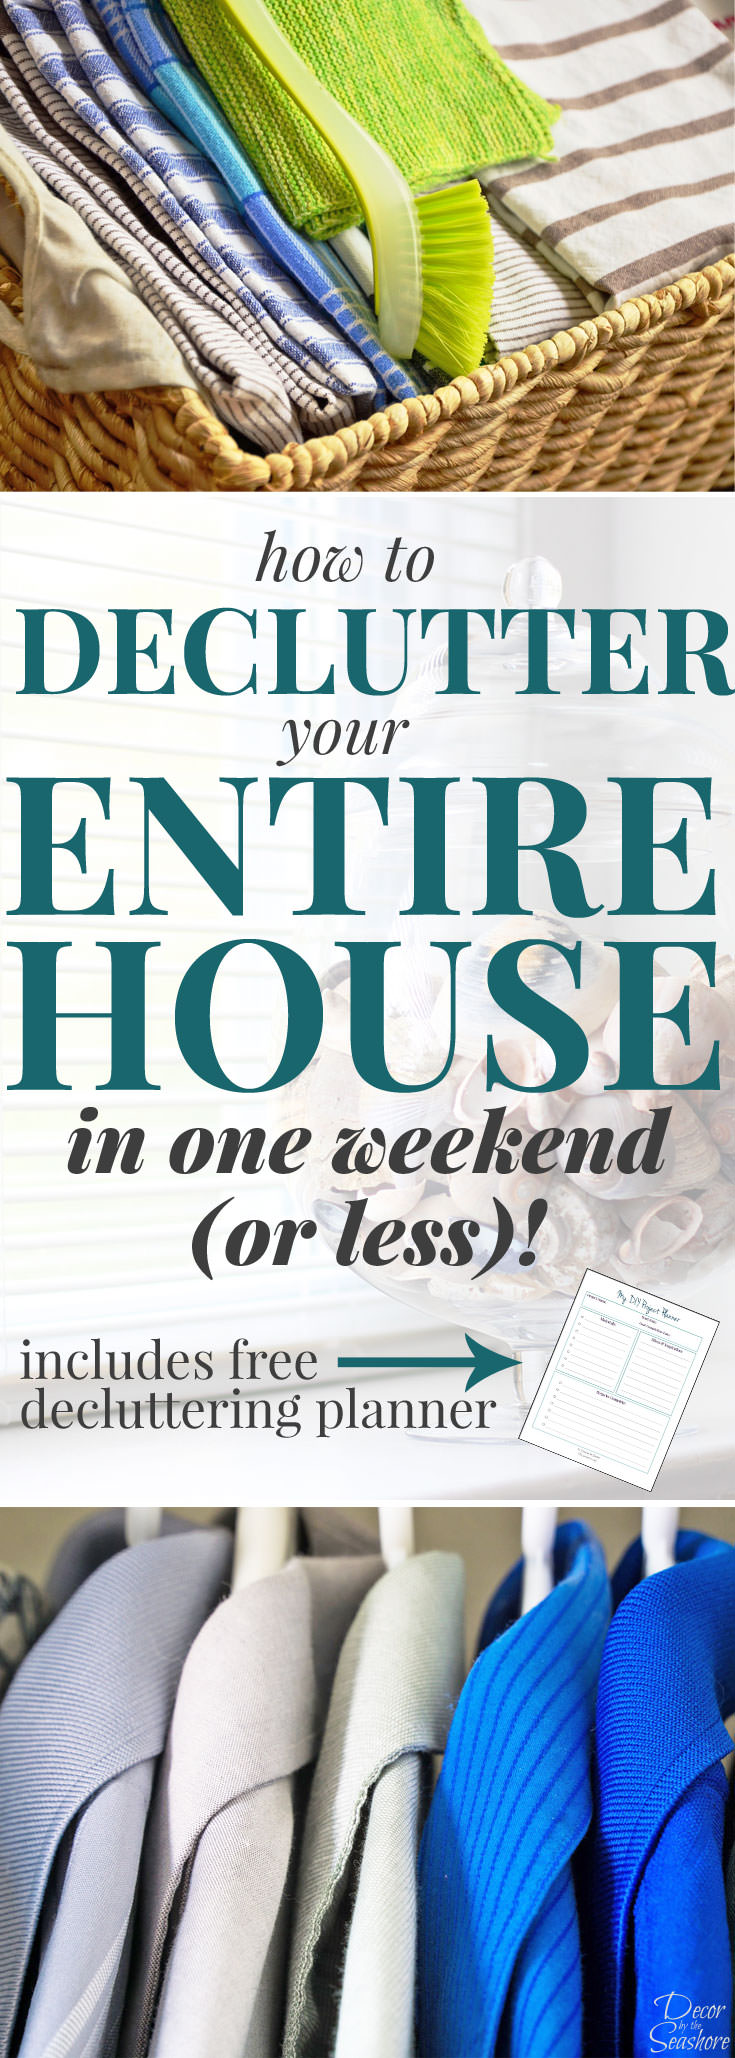 Declutter house checklist house plan 2017 for Declutter house plan